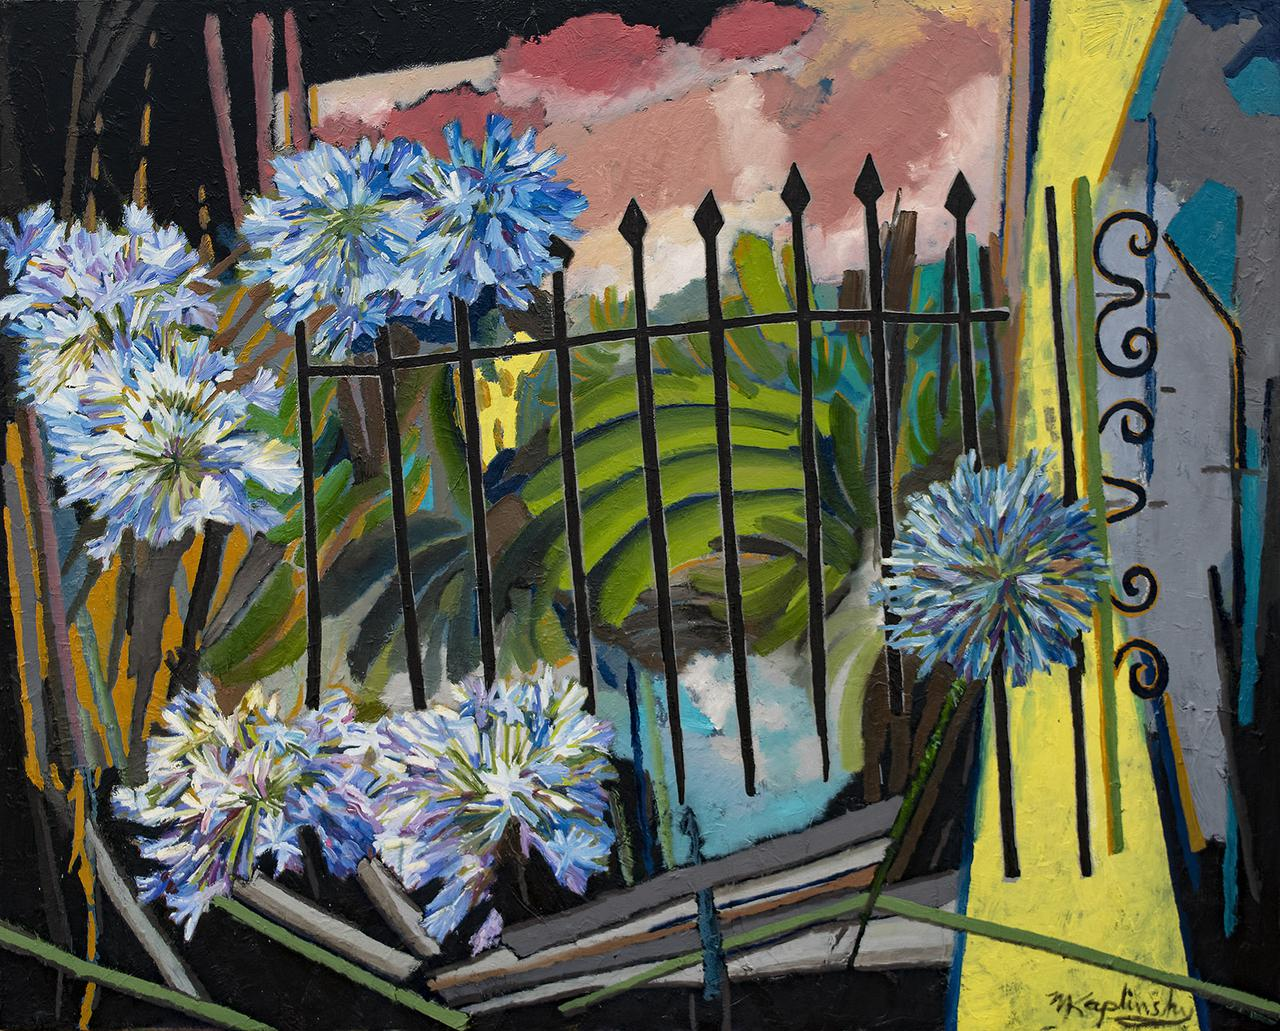 Allium at the Vineyard by Matt Kaplinsky oil on canvas 48x60 _web.jpg